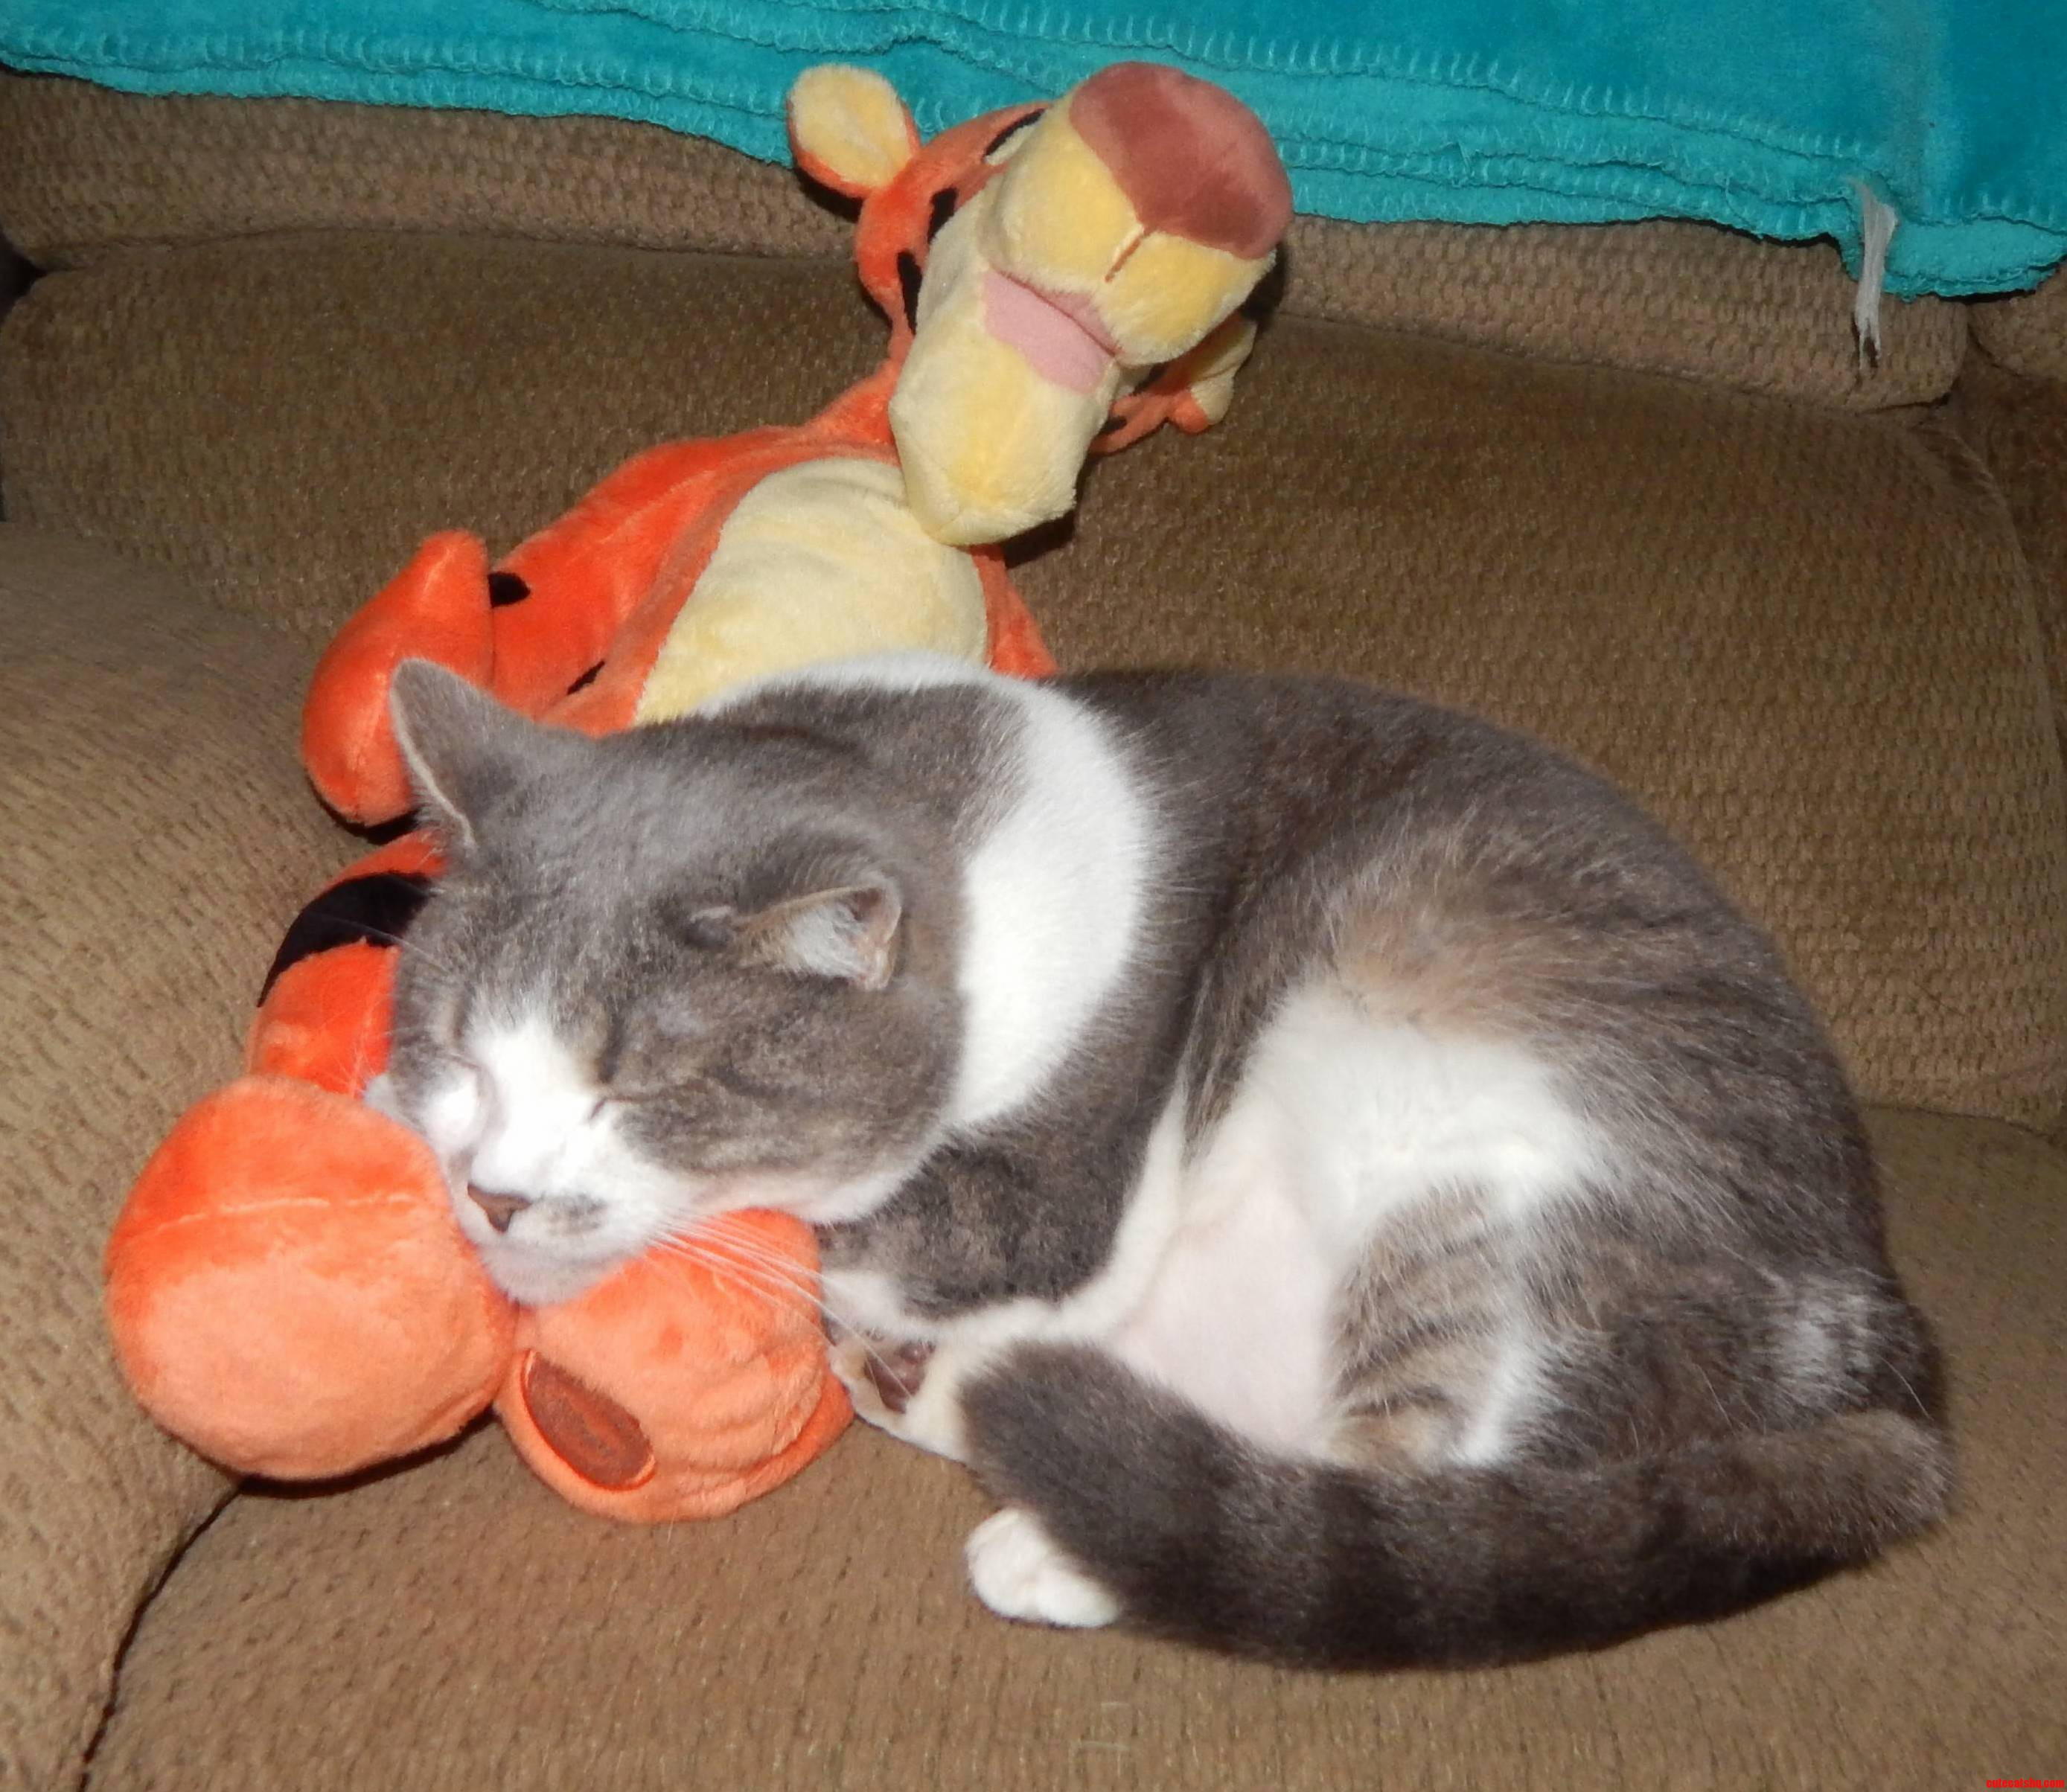 I Was Busy So She Decided To Take One Of Her Many Naps With Tigger Today.